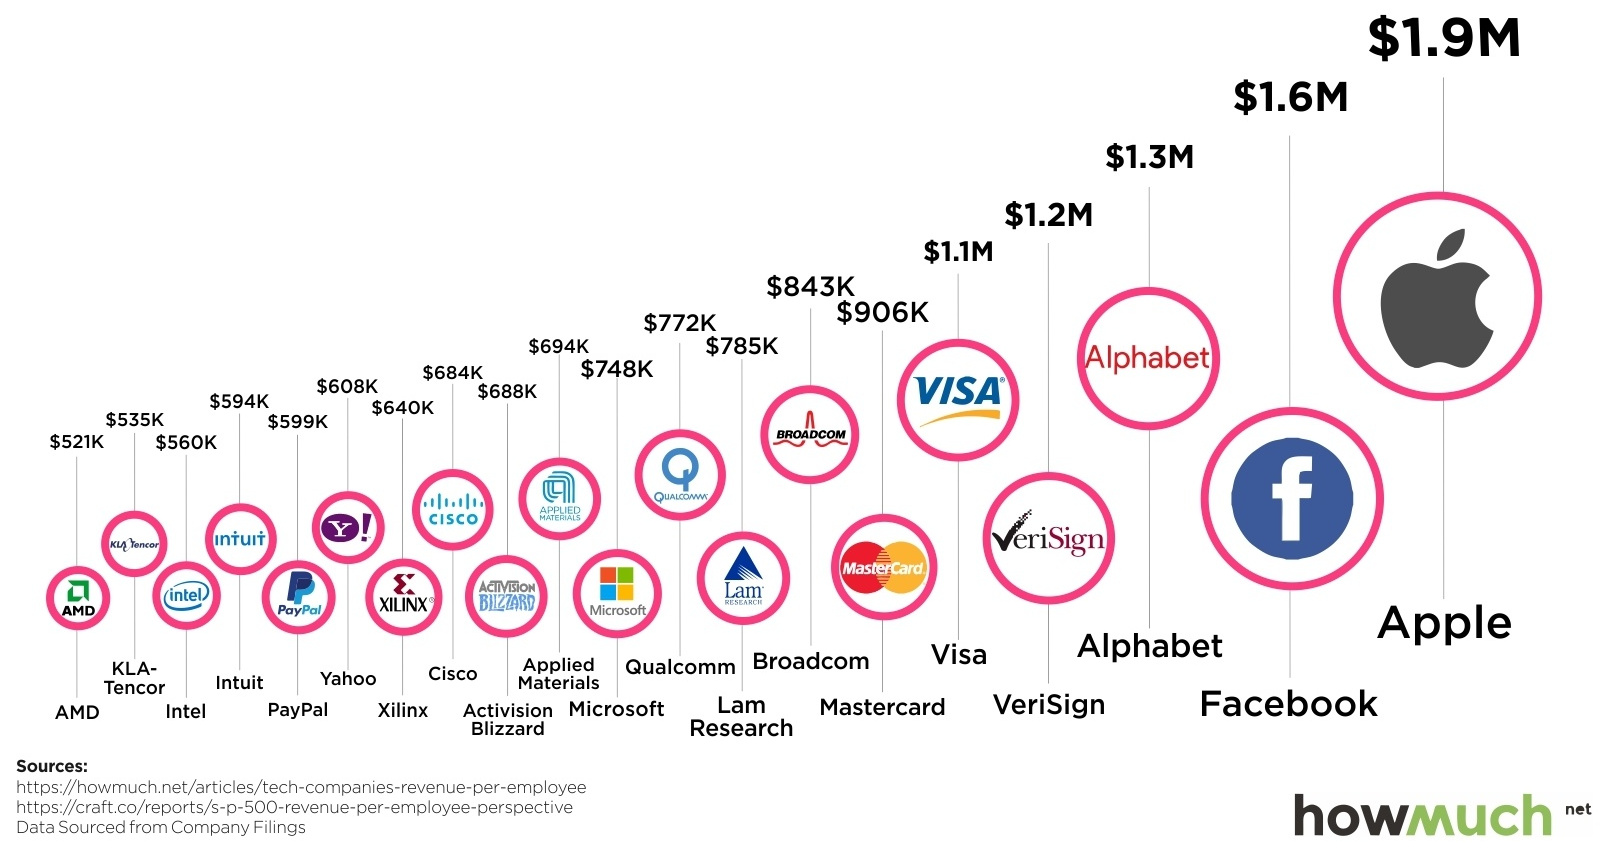 The Top 20 Tech Companies by Revenue Per Employee